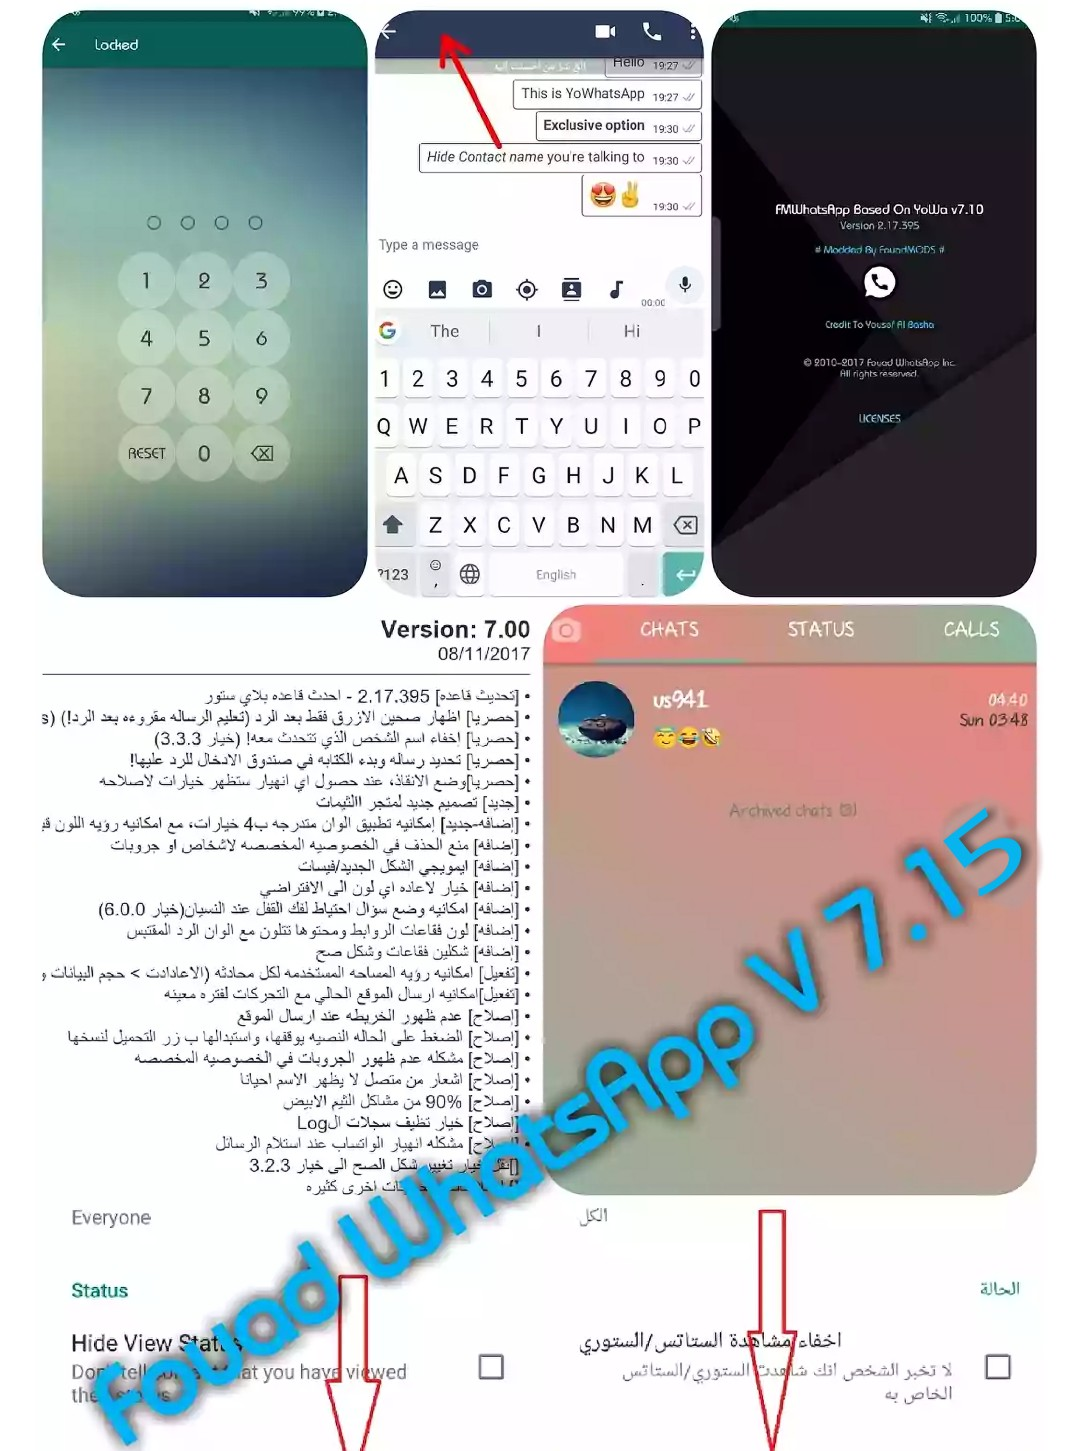 Download fouad whatsapp ios 11 apk